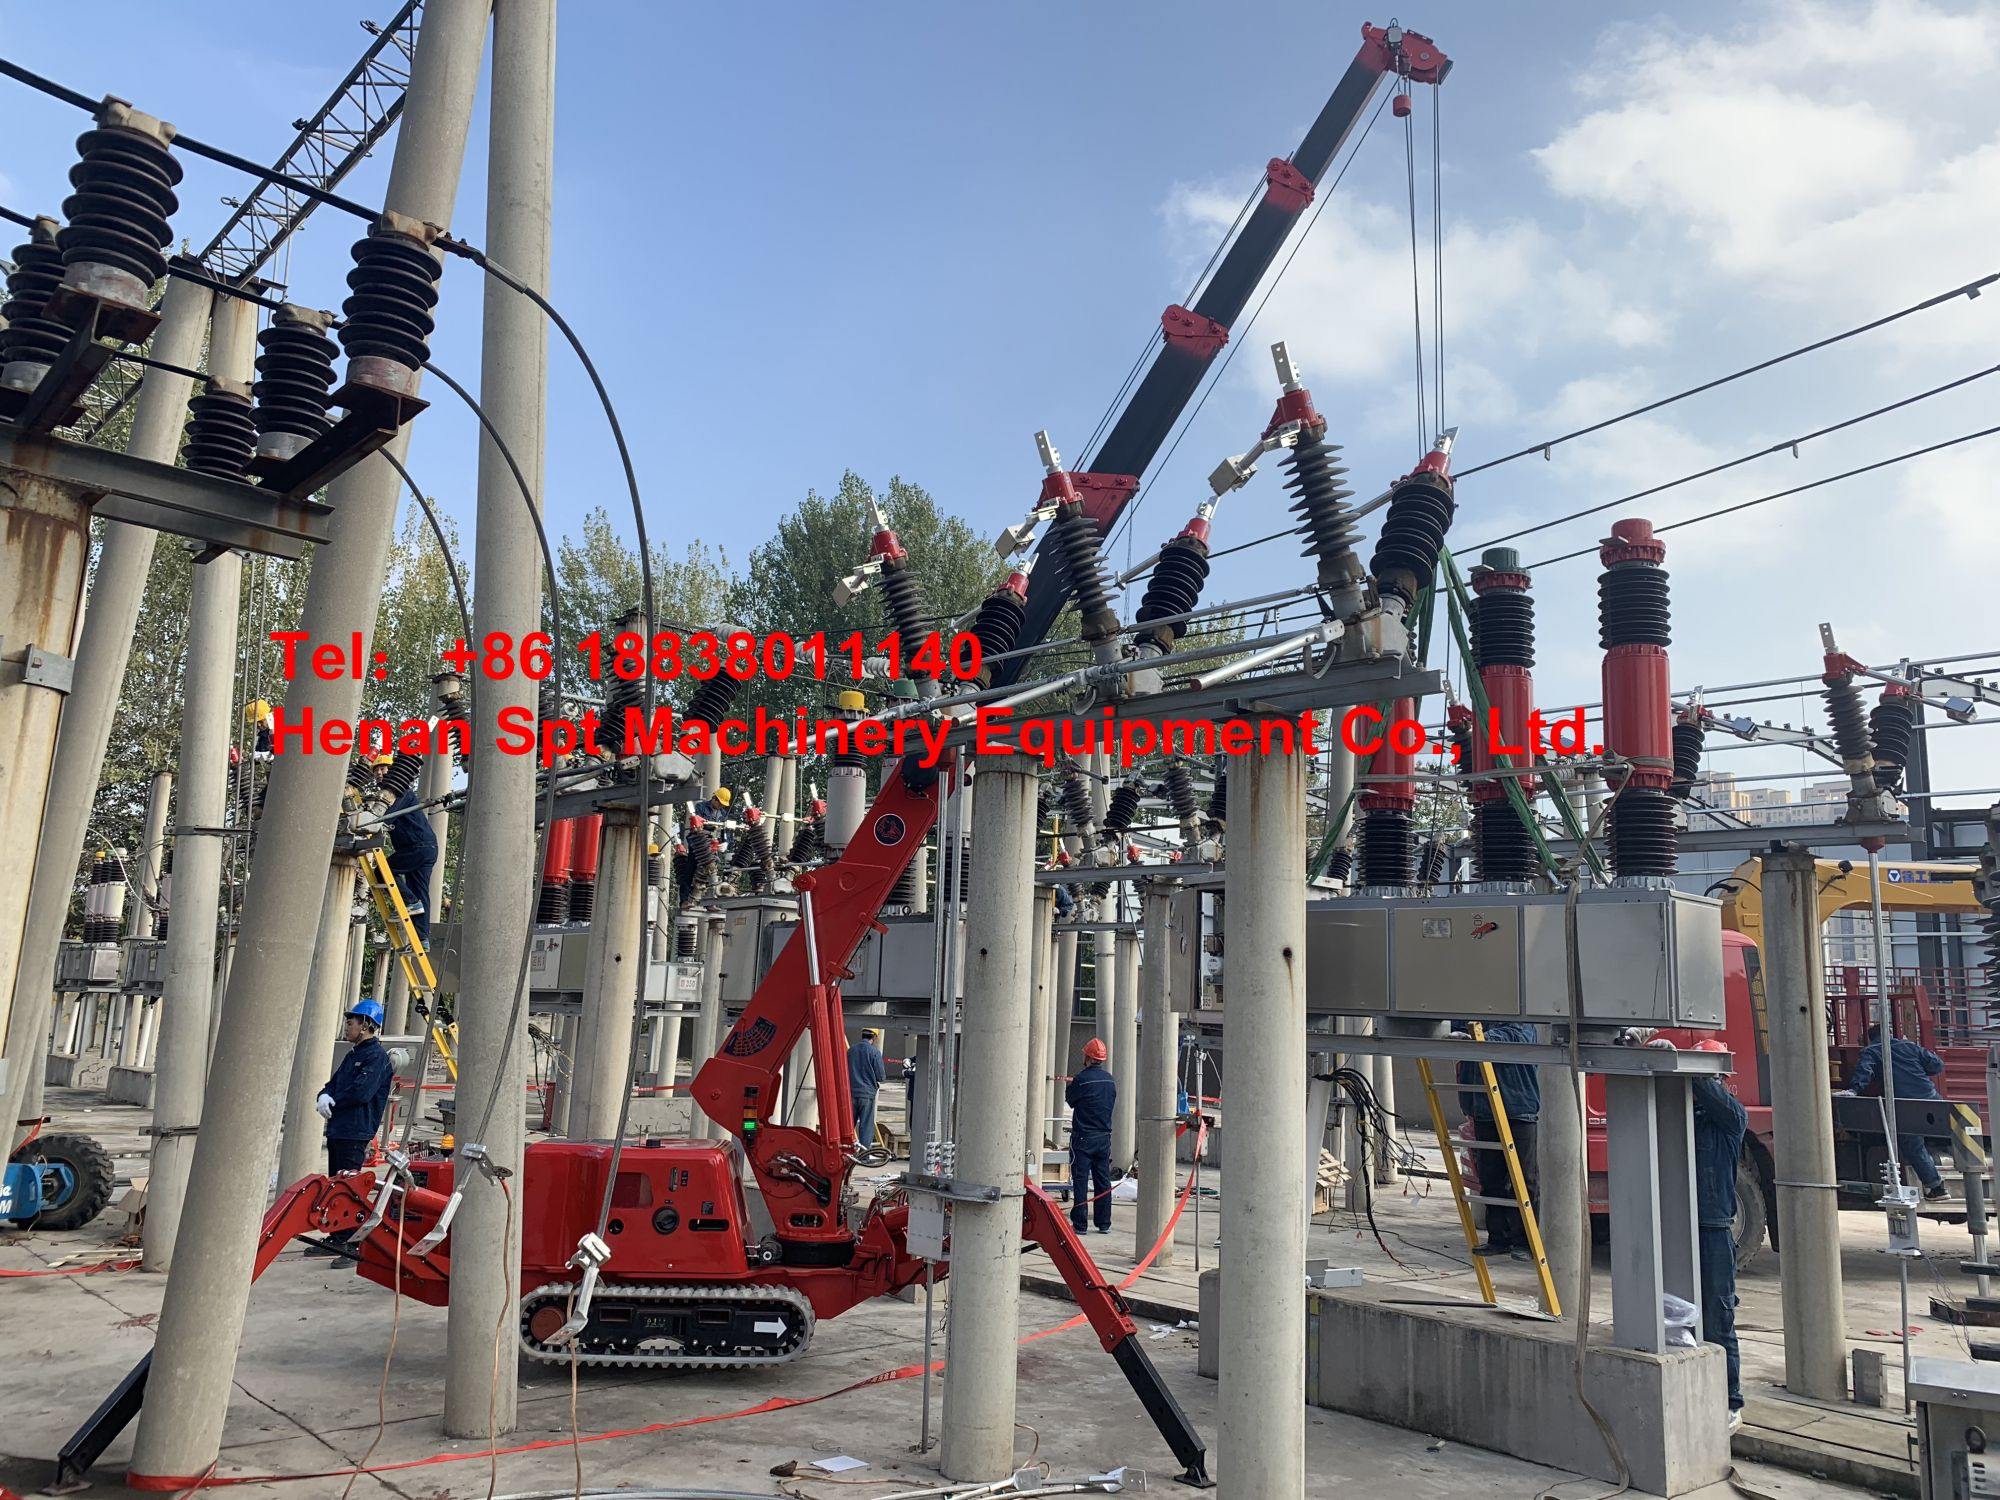 Due to the limitation of working space, the Power Bureau rent the SPT299-3T spider crane to efficiently complete the 35KV circuit breaker maintenance.